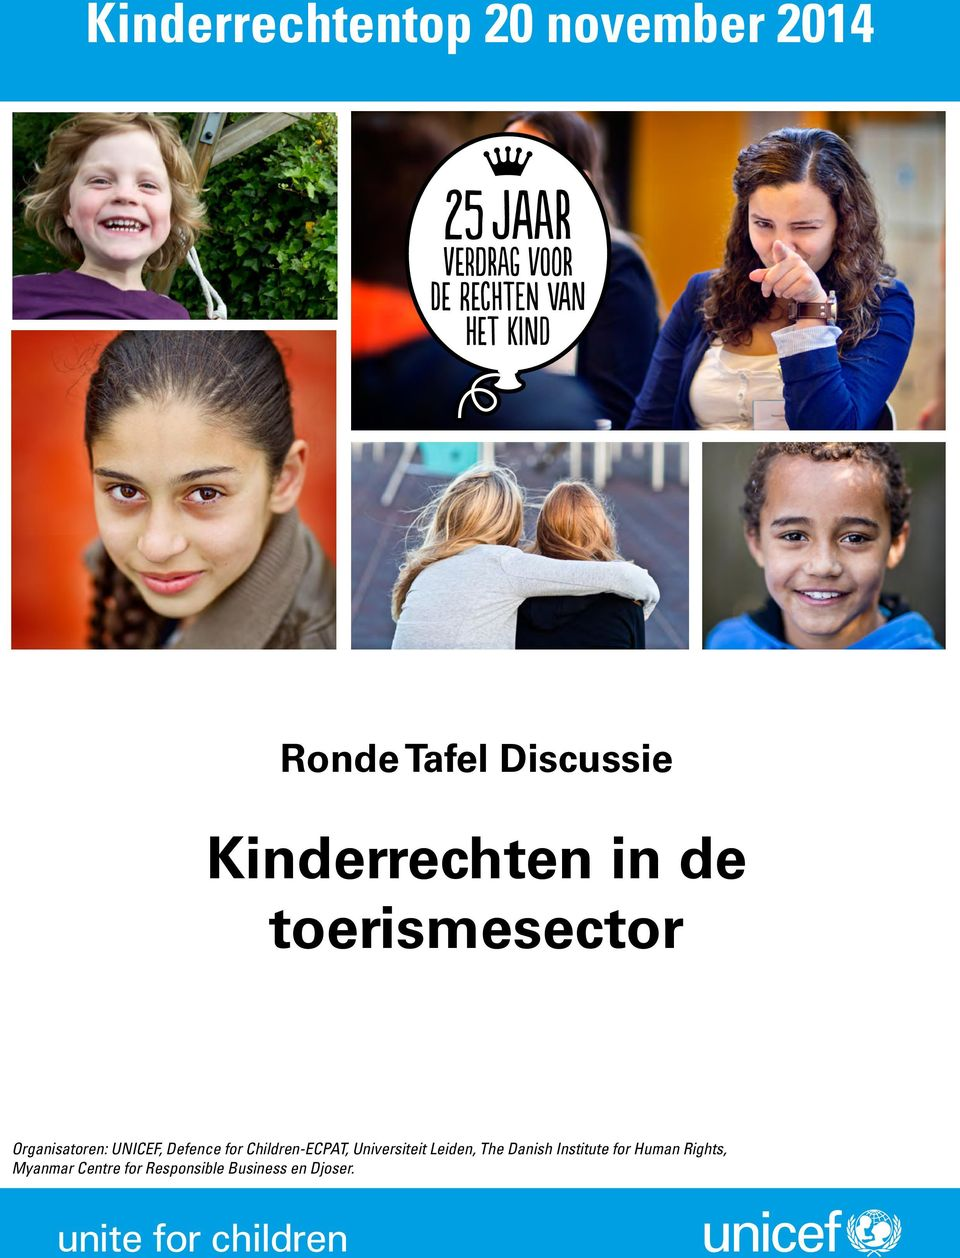 Defence for Children-ECPAT, Universiteit Leiden, The Danish